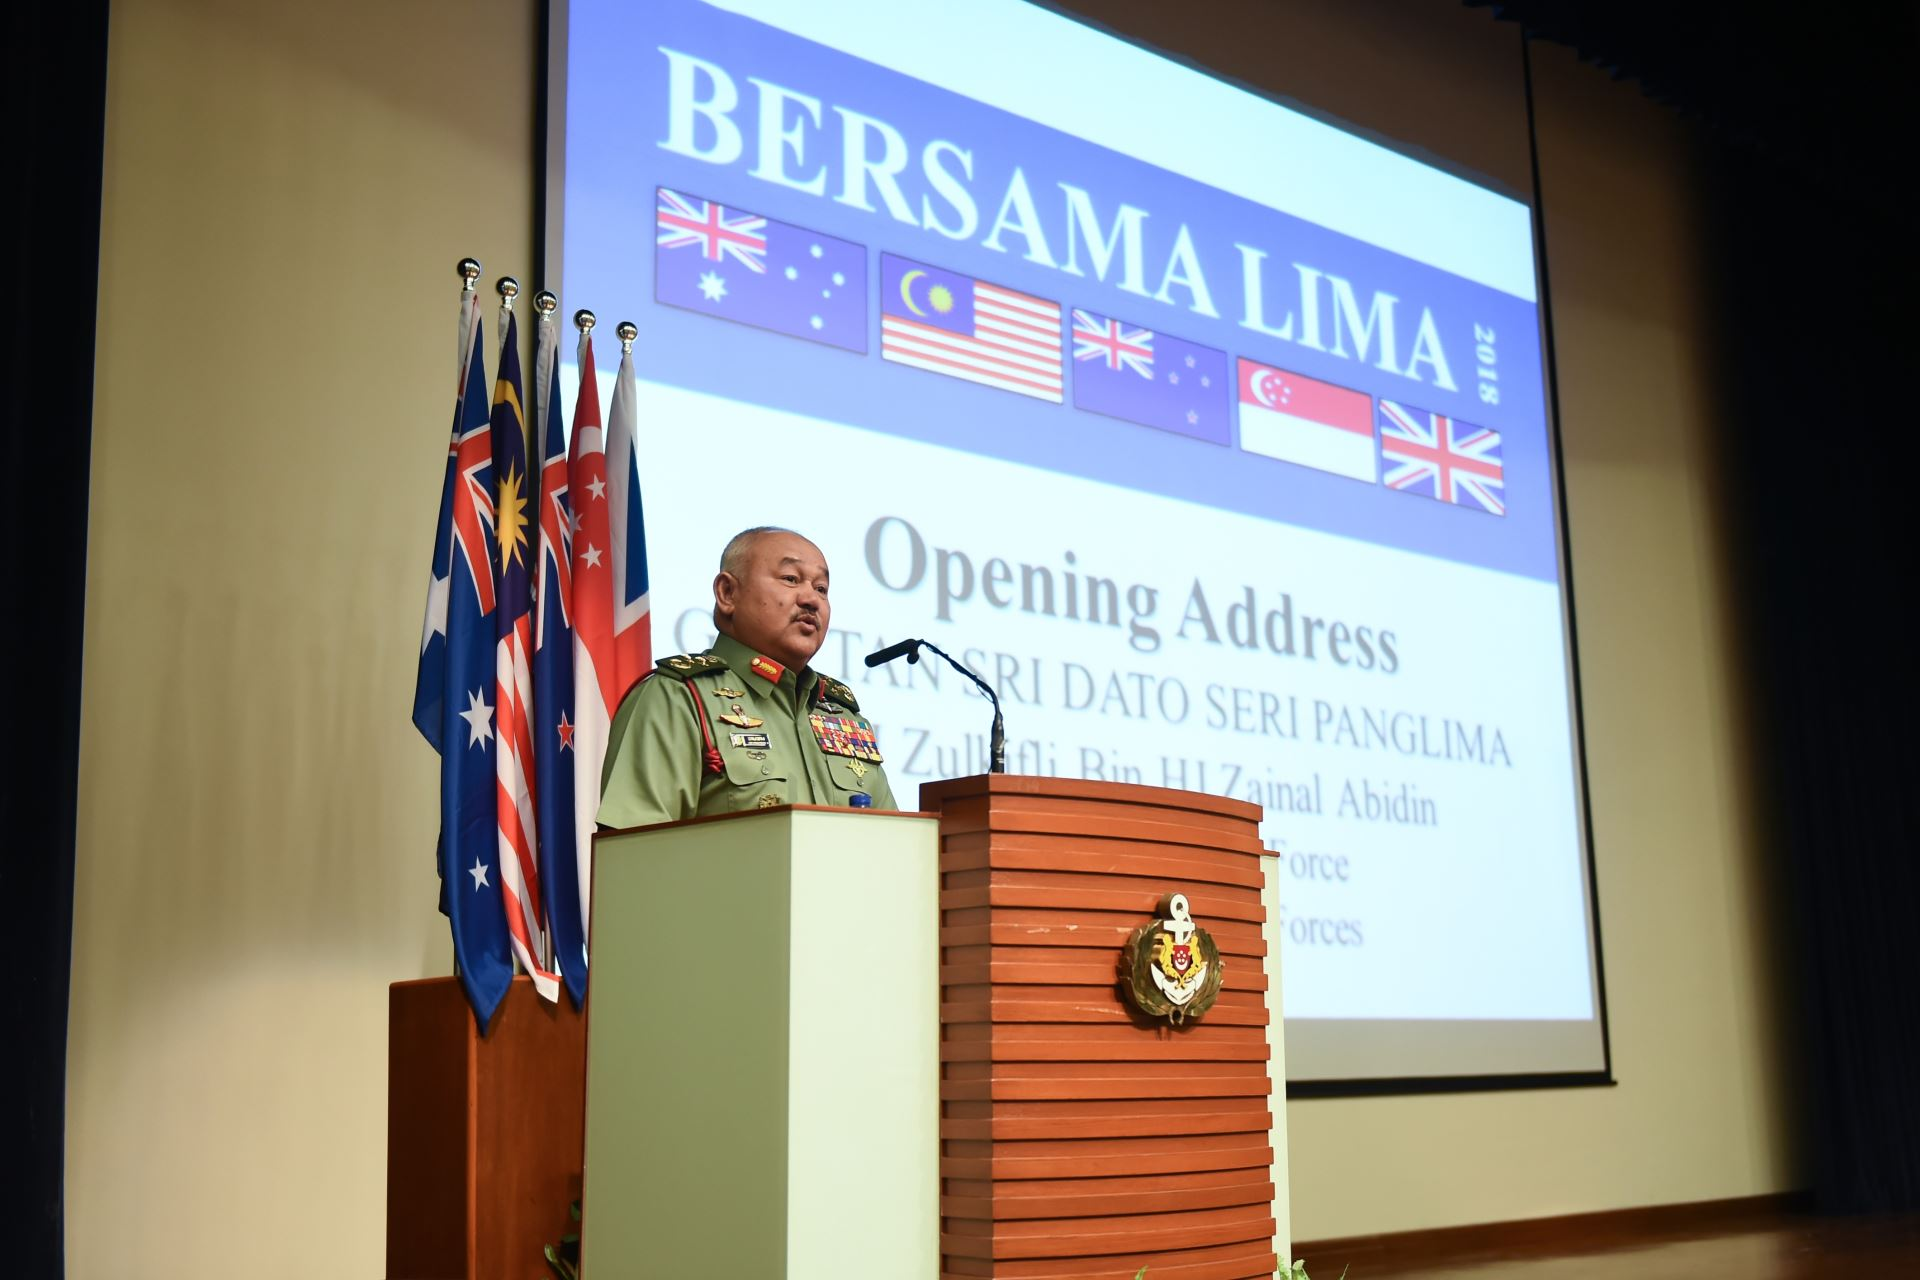 GEN Zulkifli giving the opening address at the opening ceremony of Ex Bersama Lima.